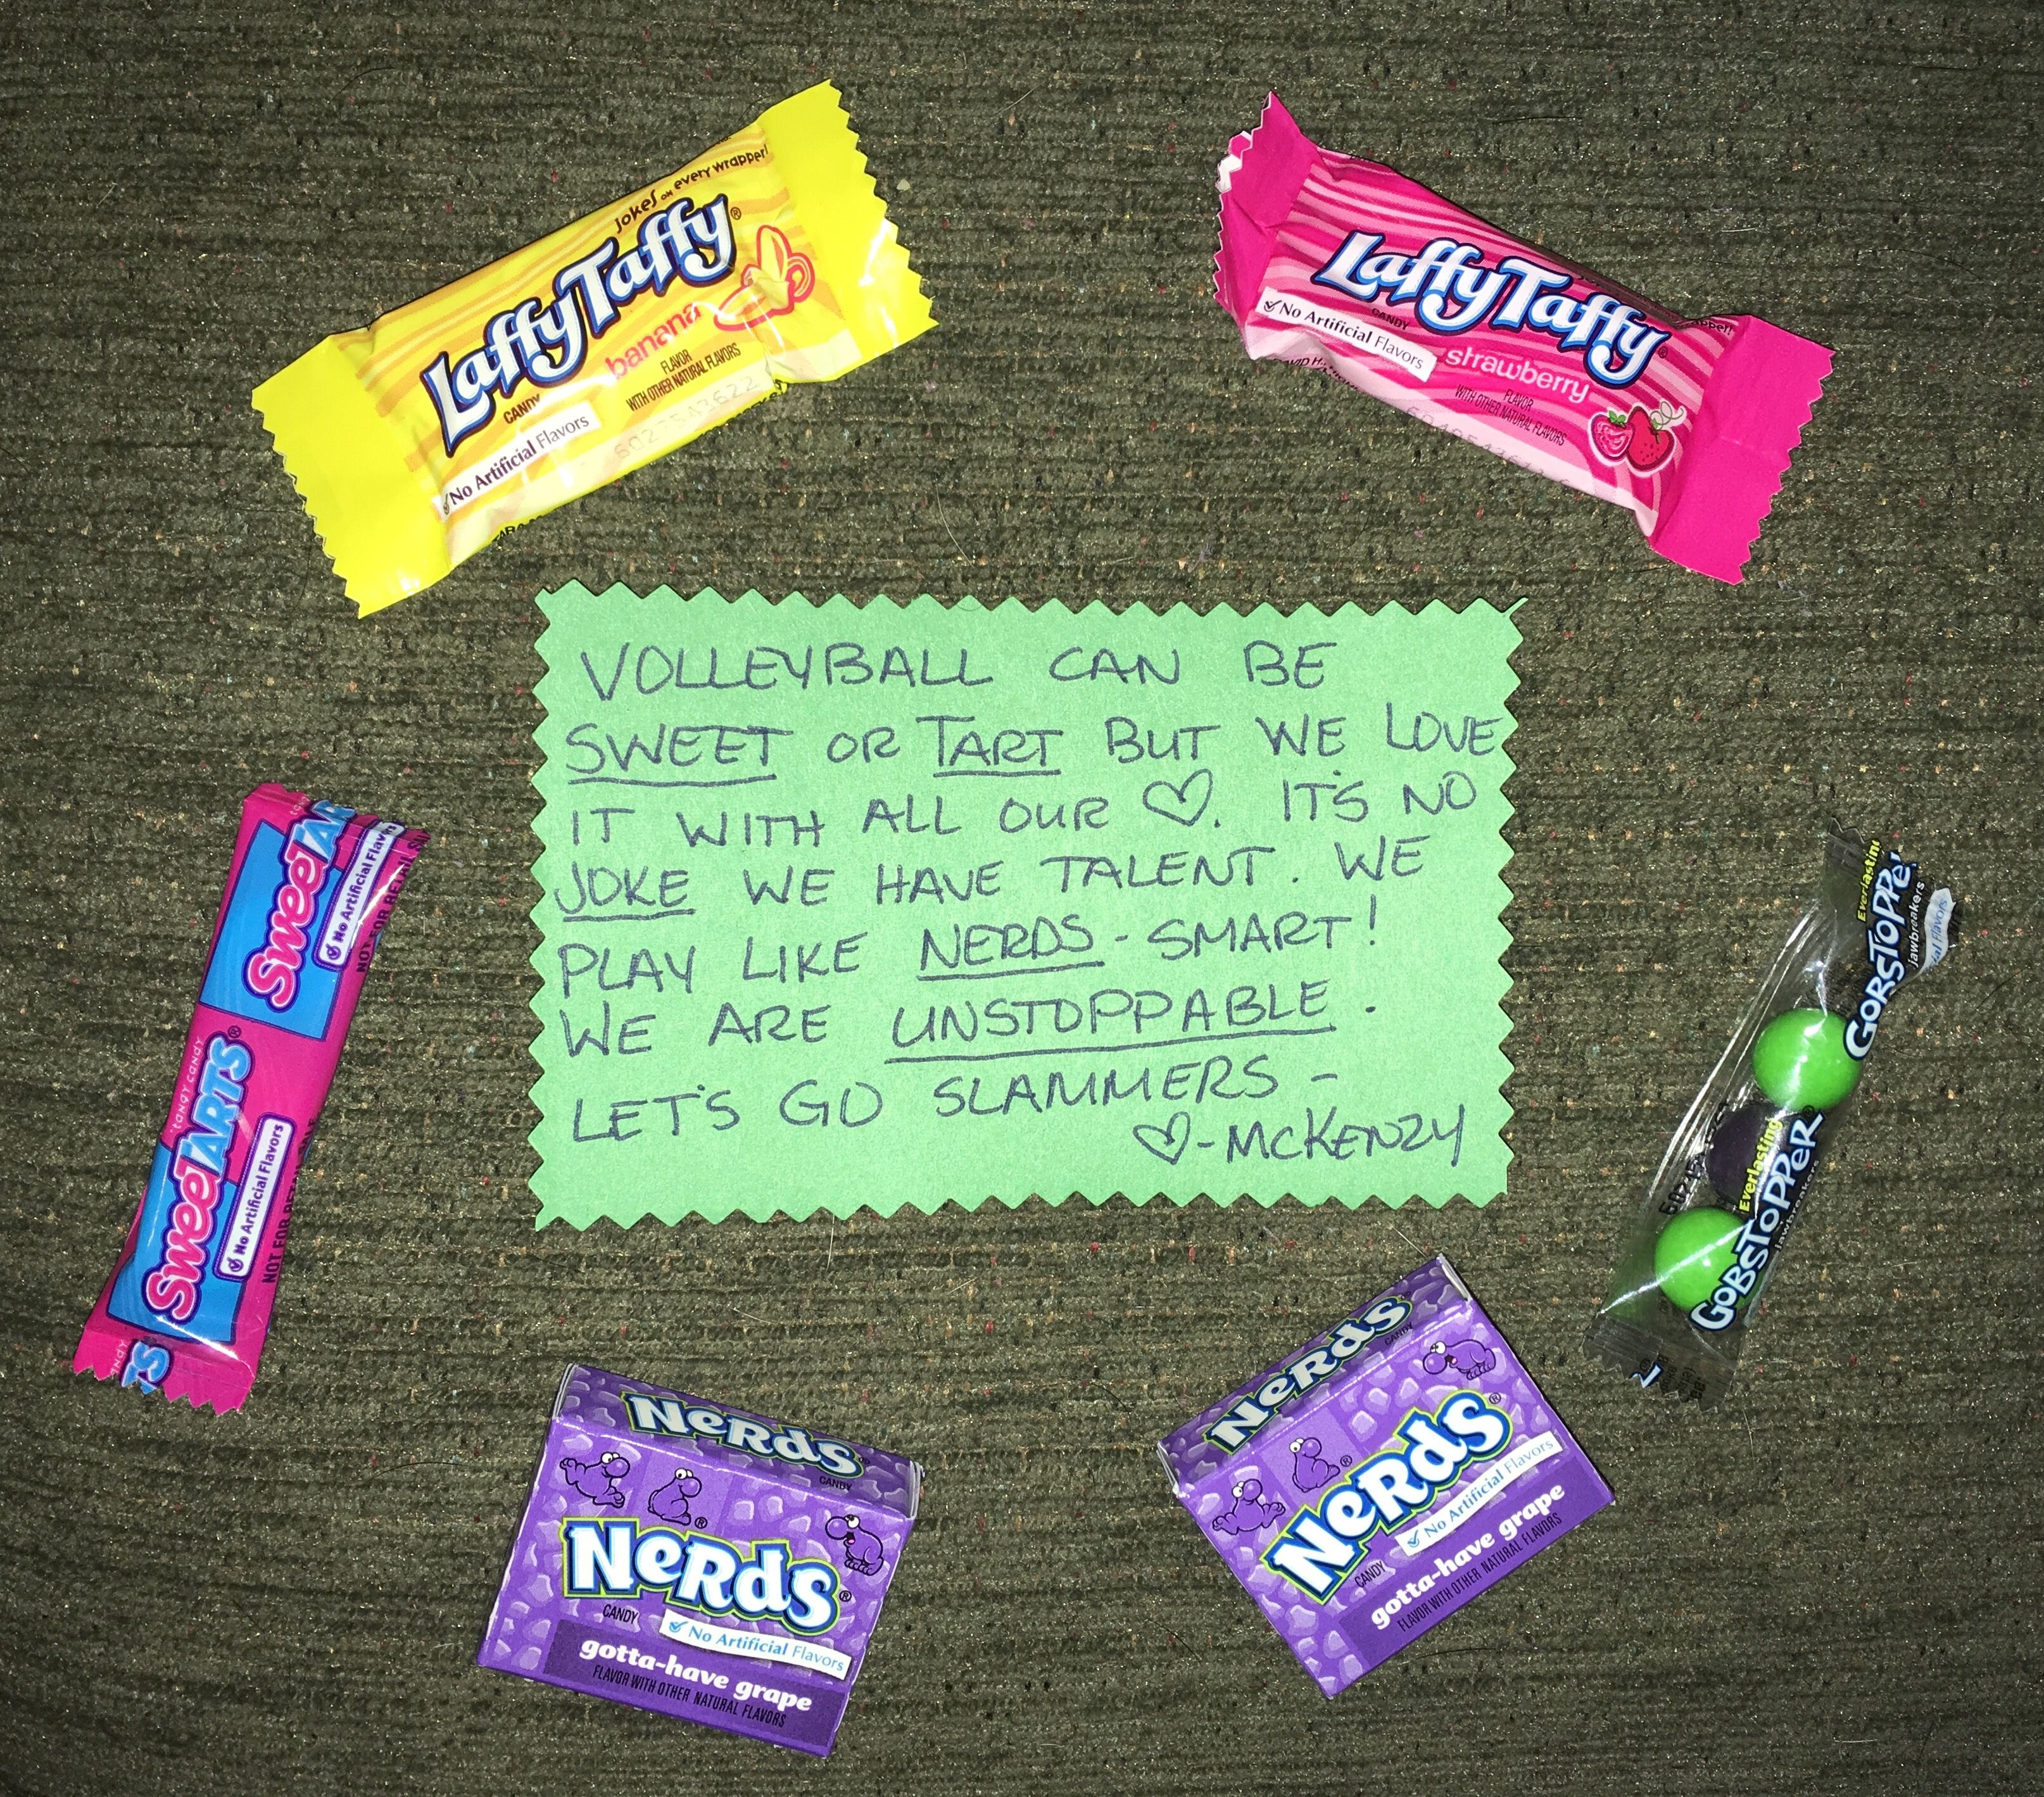 Sweettarts Laffy Taffy Nerds Gobstopper Candy Poem Volleyball Littlediggers2016 Candy Poems Candy Quotes Volleyball Quotes